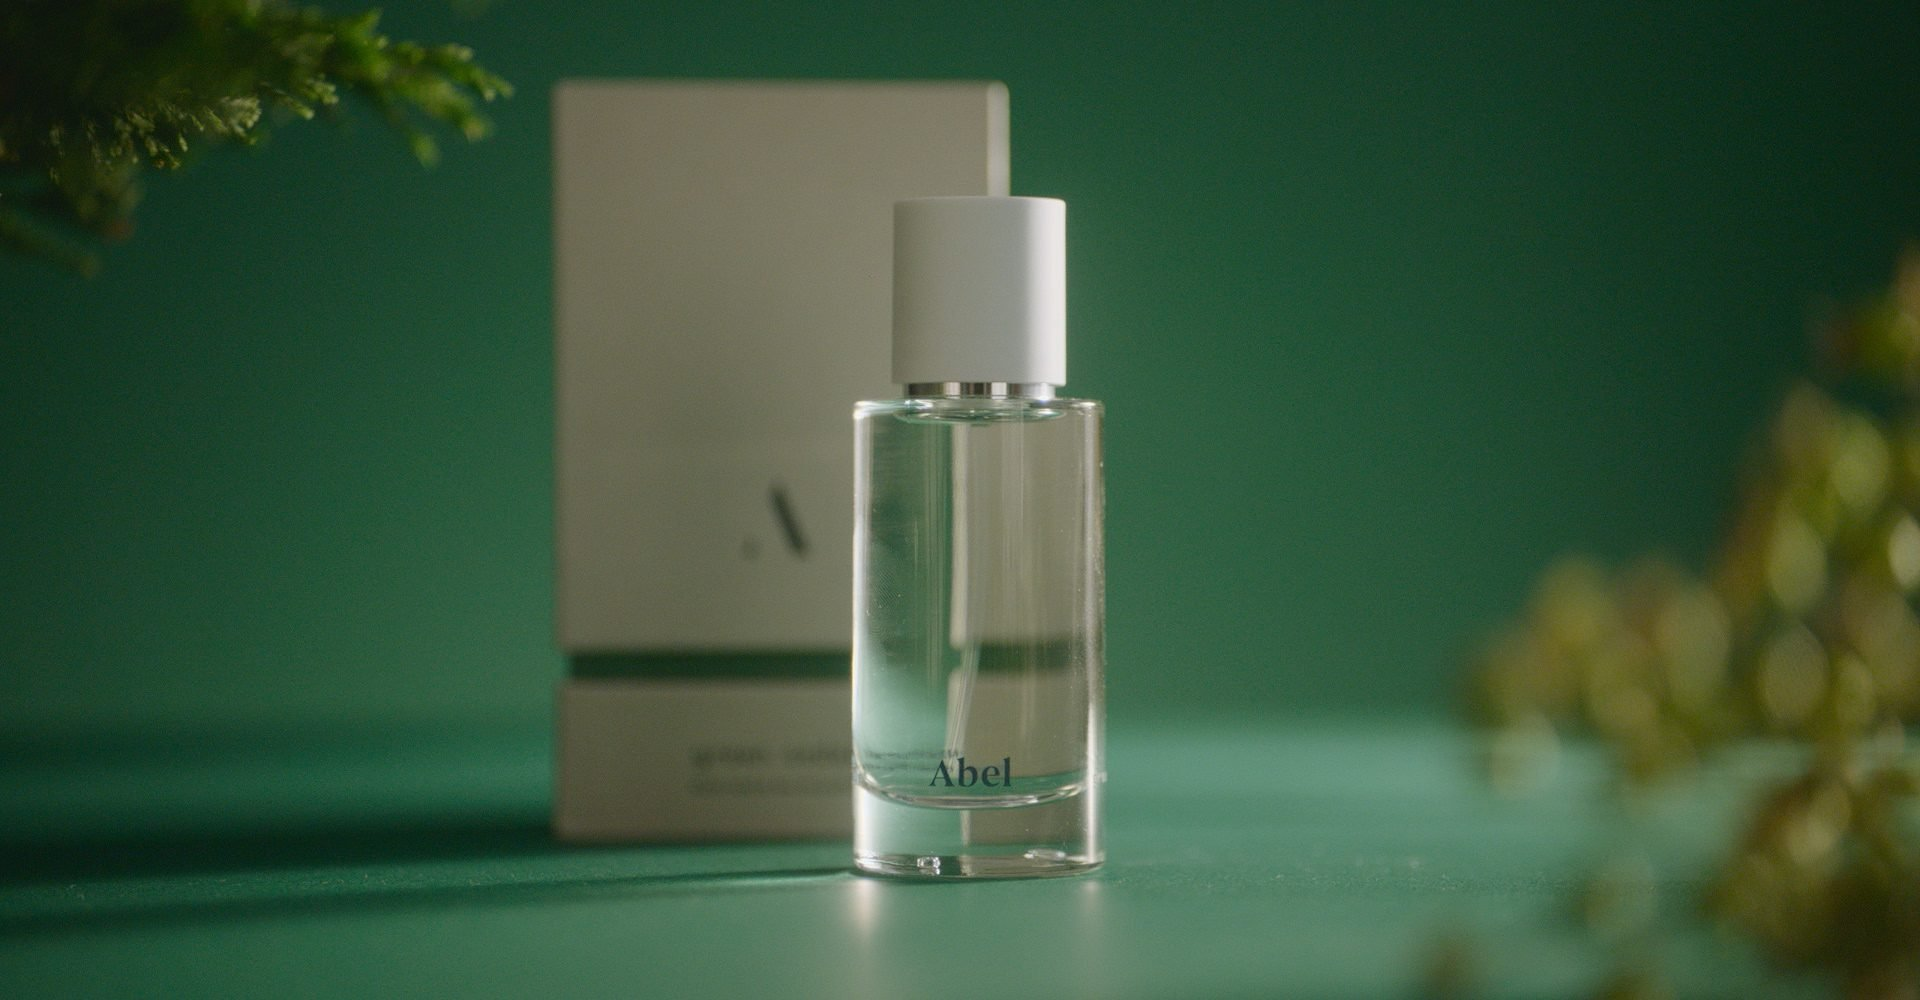 Abel Tried And Failed To Replace Plastic In Its Packaging. Its Experience Shows Going Green Isn't Always Easy.